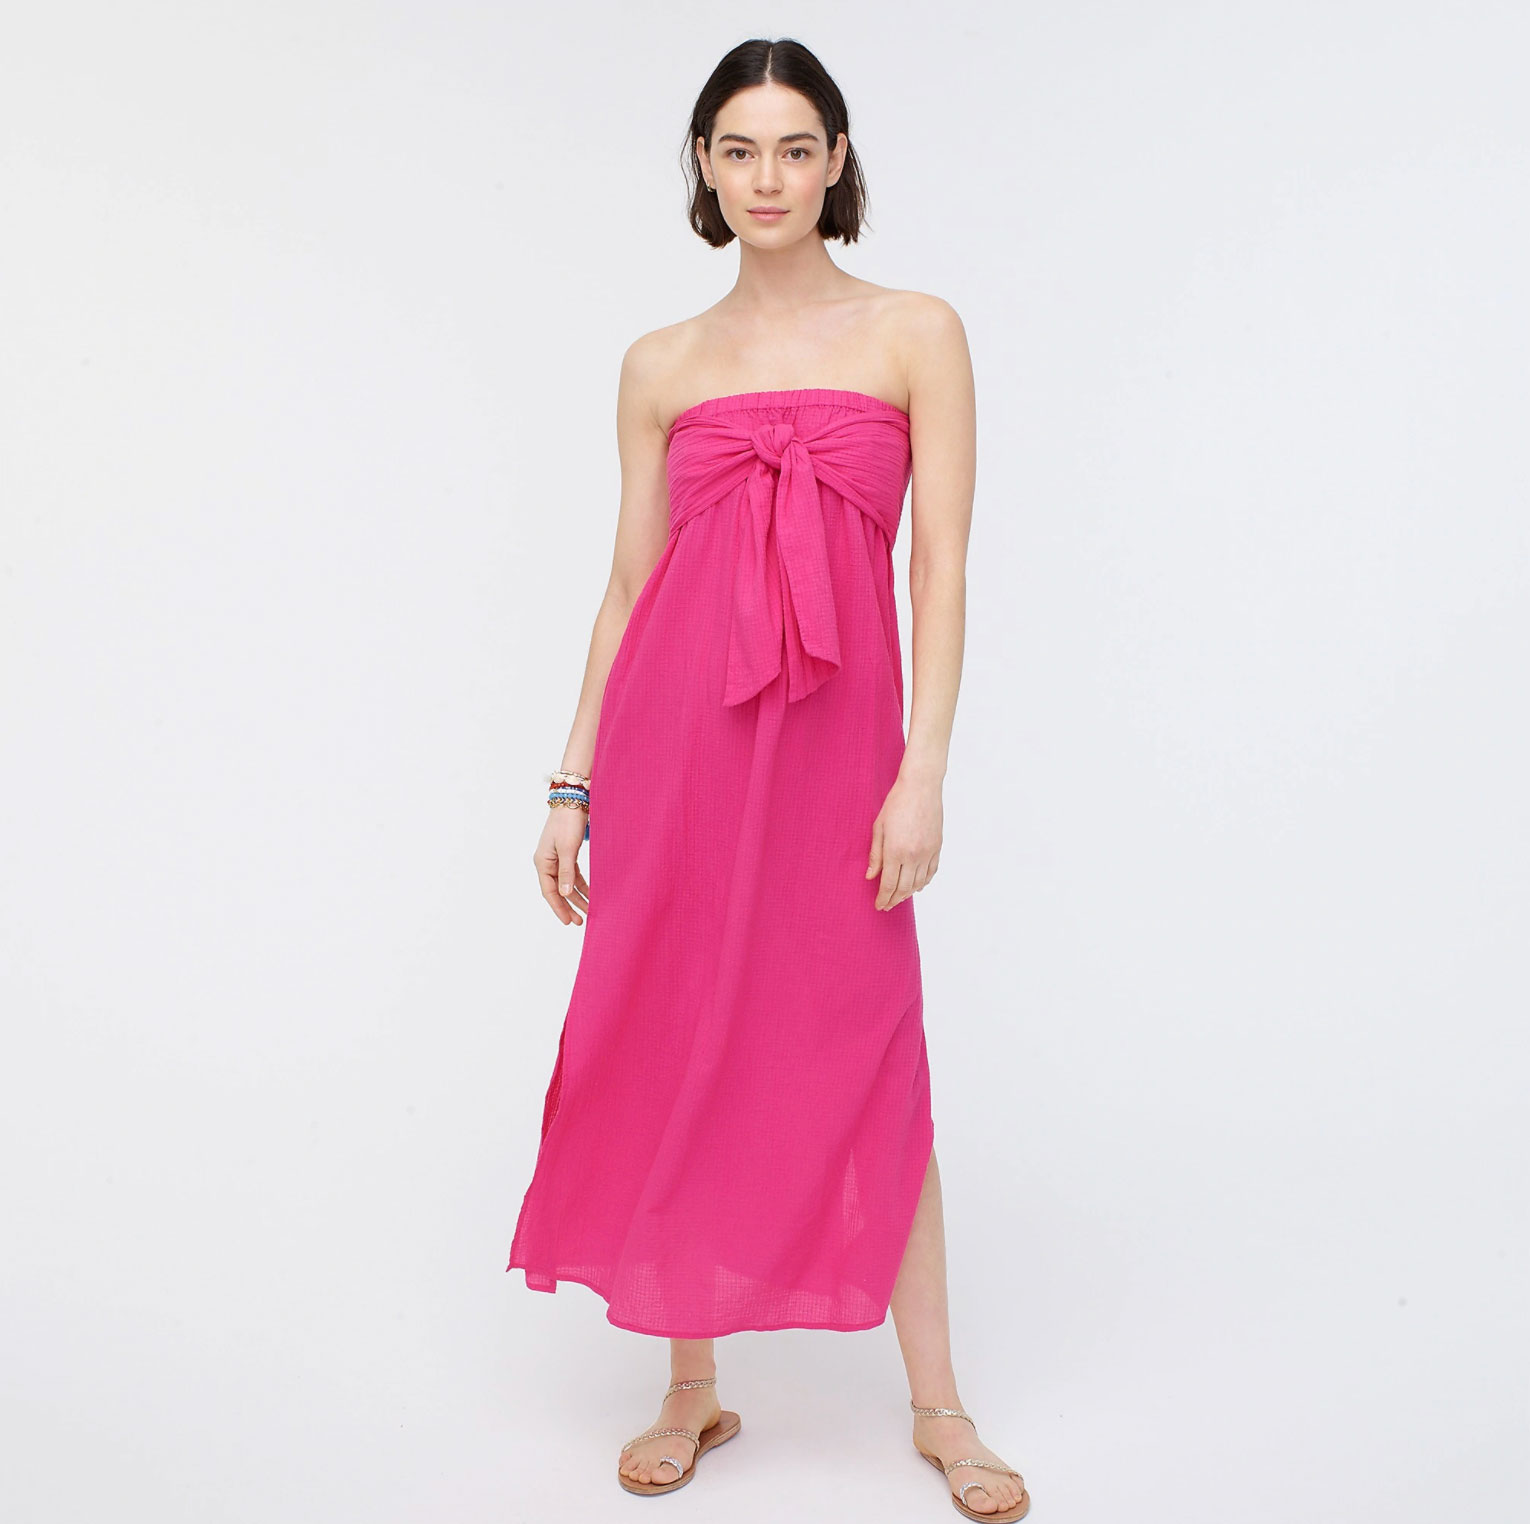 Buy It: $66; jcrew.com                                       The bow is both functional and fashionable. It's adjustable so the dress stays snug no matter where your swimsuit takes you.